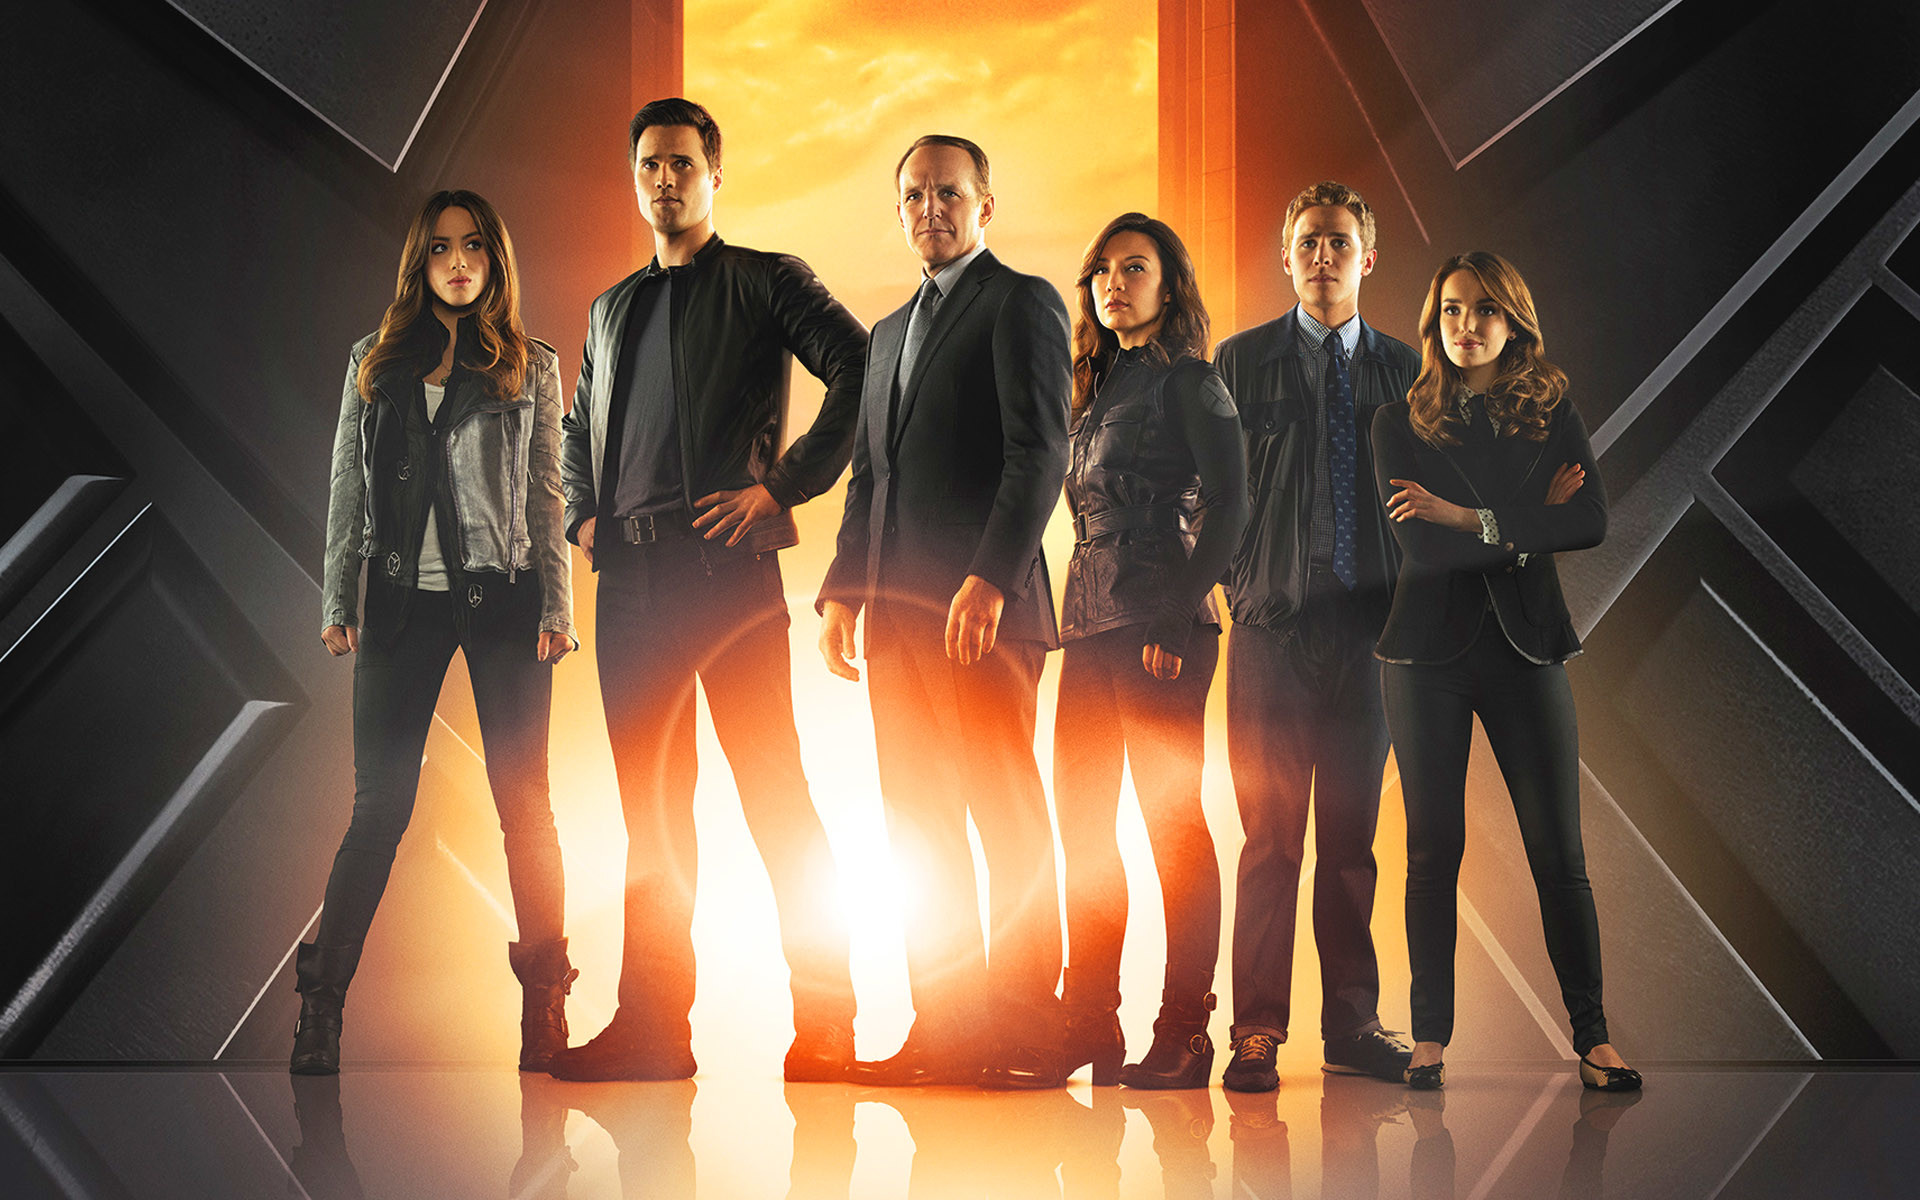 1920x1200 Agents of SHIELD All Cast Wallpaper - HD Wallpaper Rate